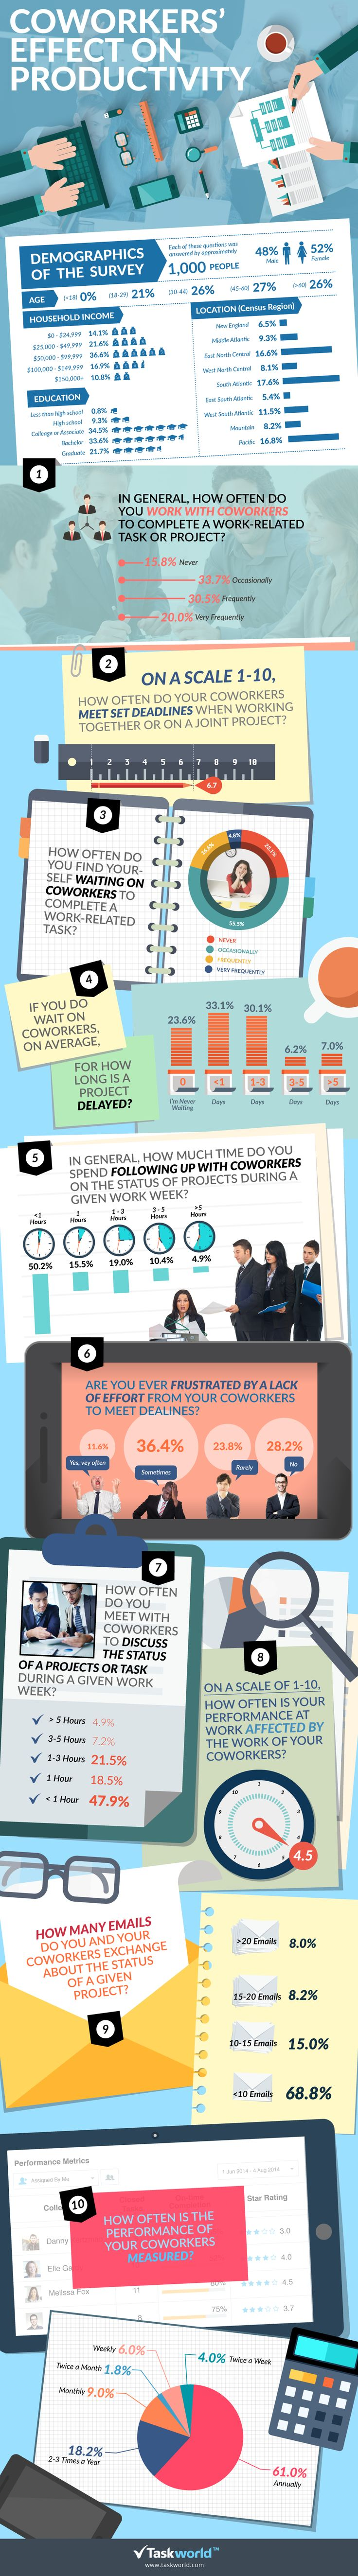 Do you ever wonder whether your coworkers are holding you back Taskworld conducted a survey to find out just how your coworkers are impacting your